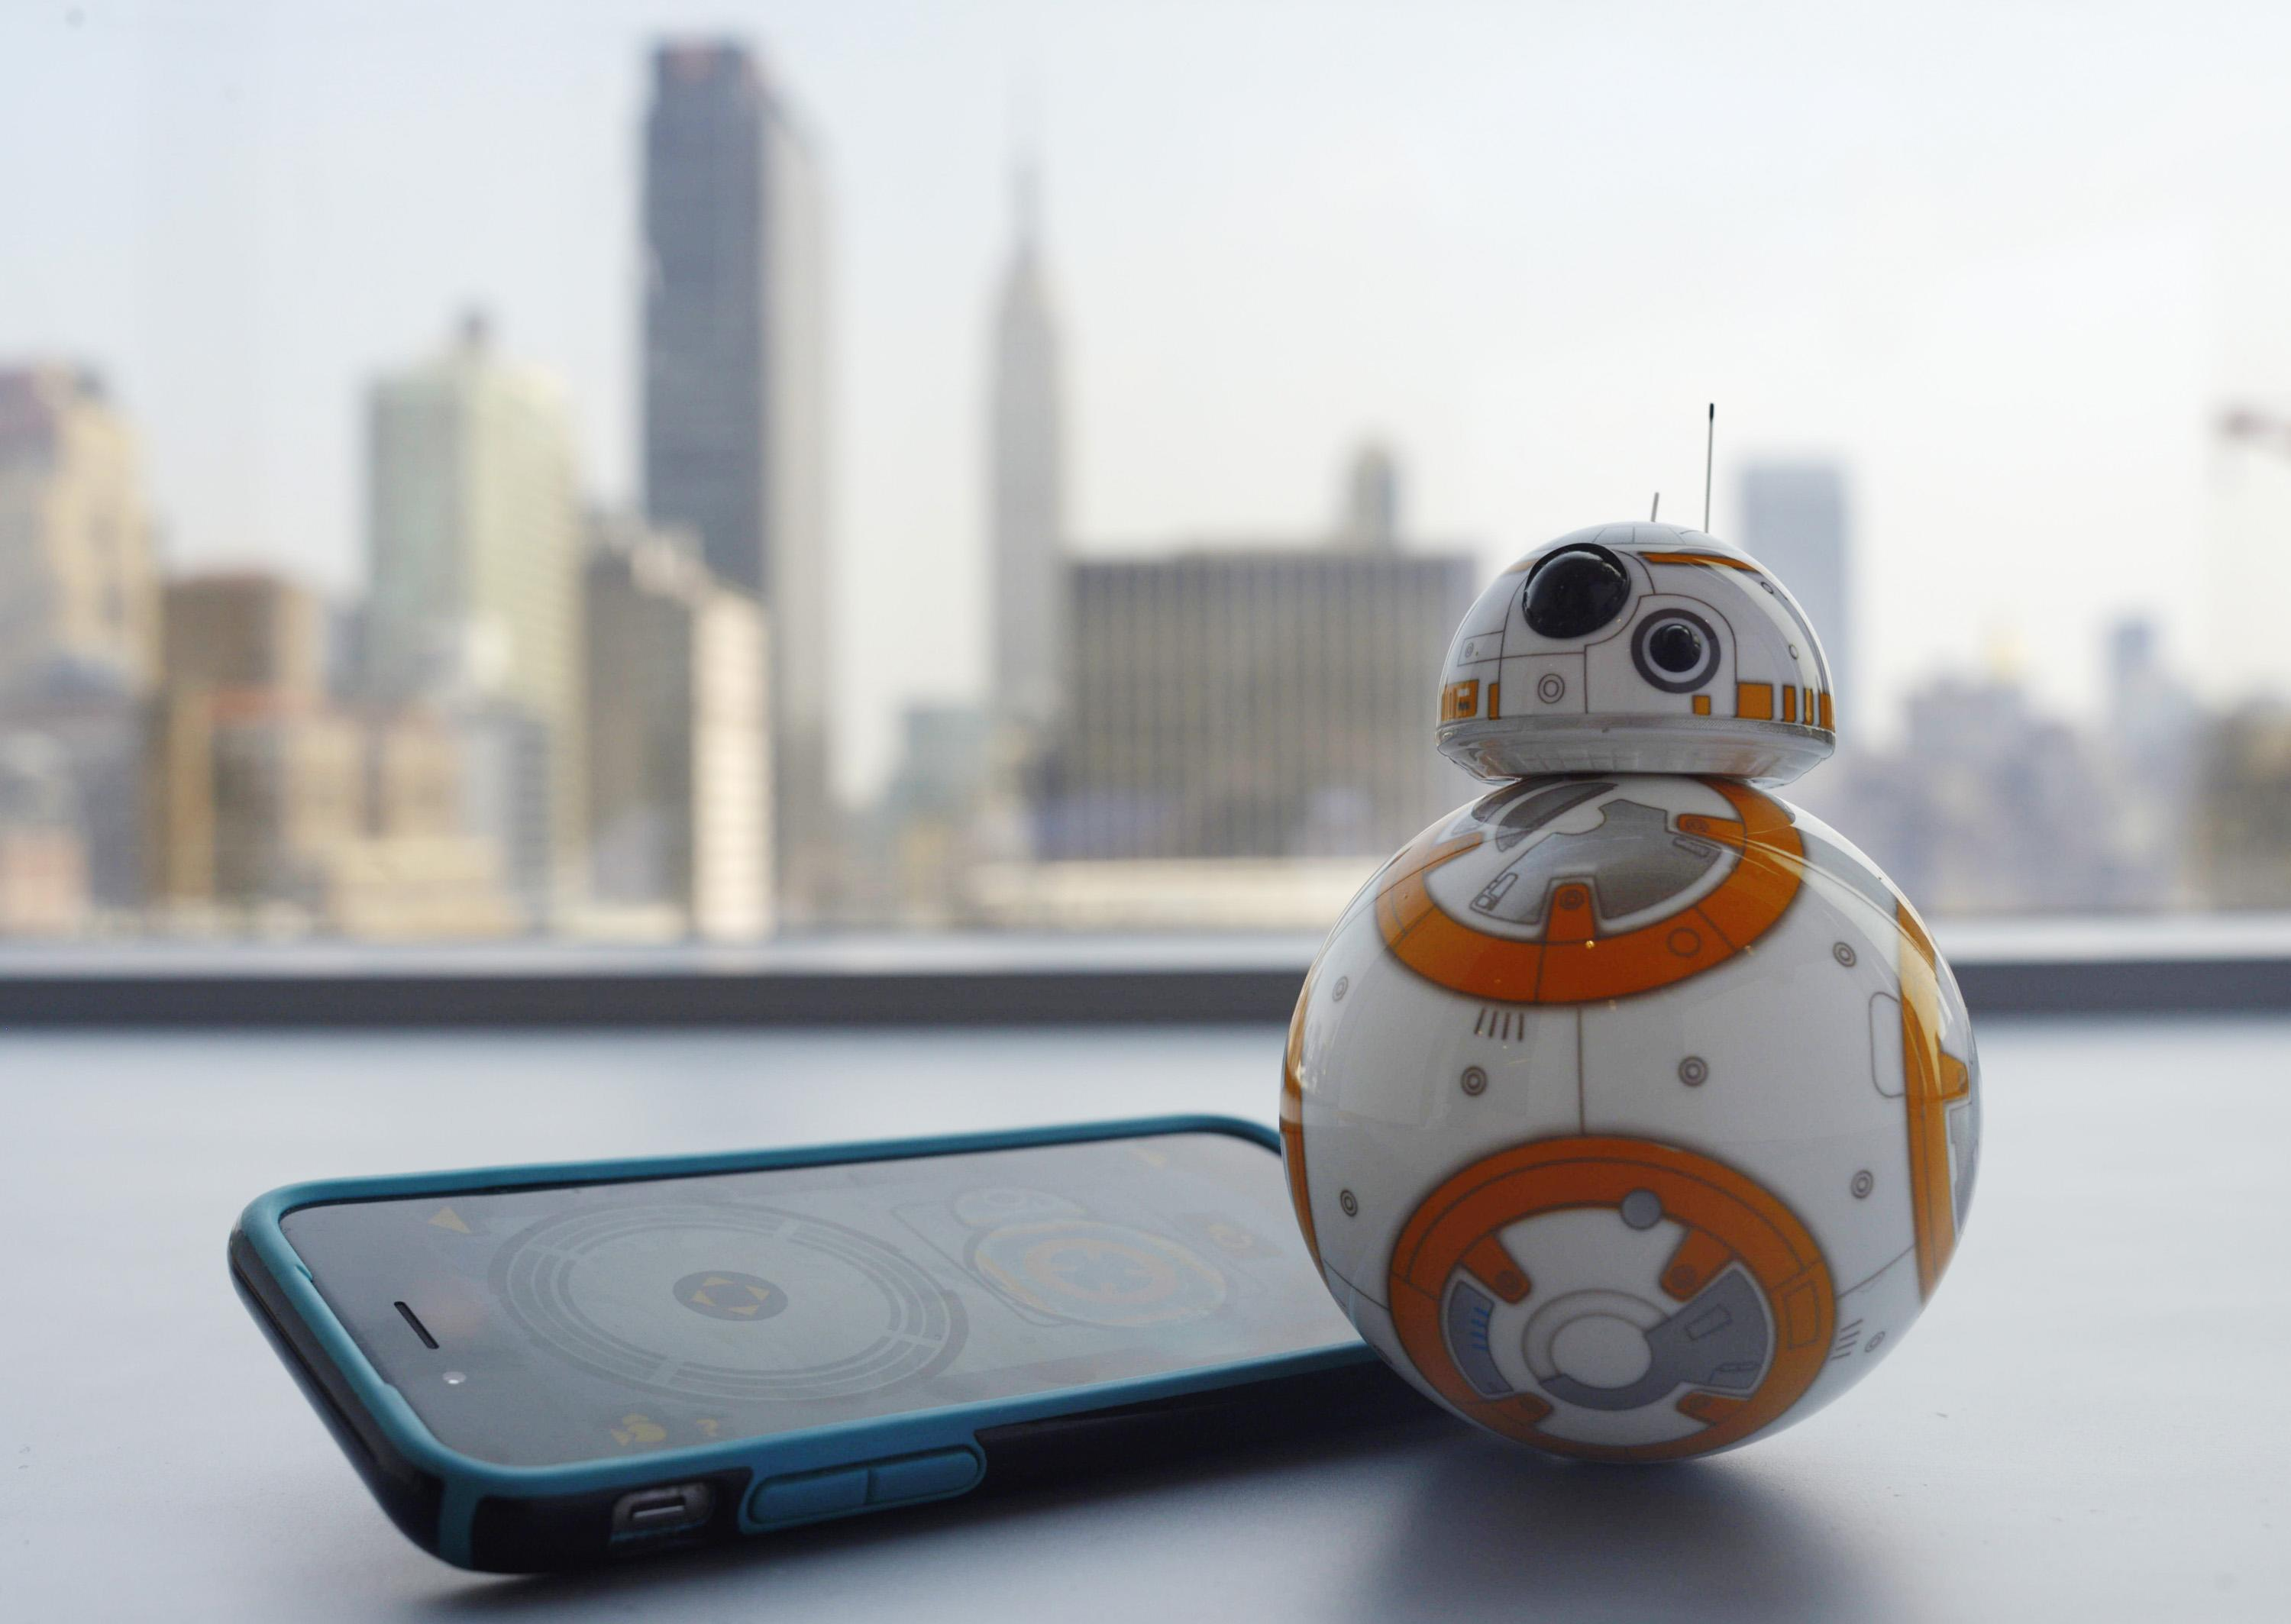 Disney unveils Star Wars toys amid marketing blitz